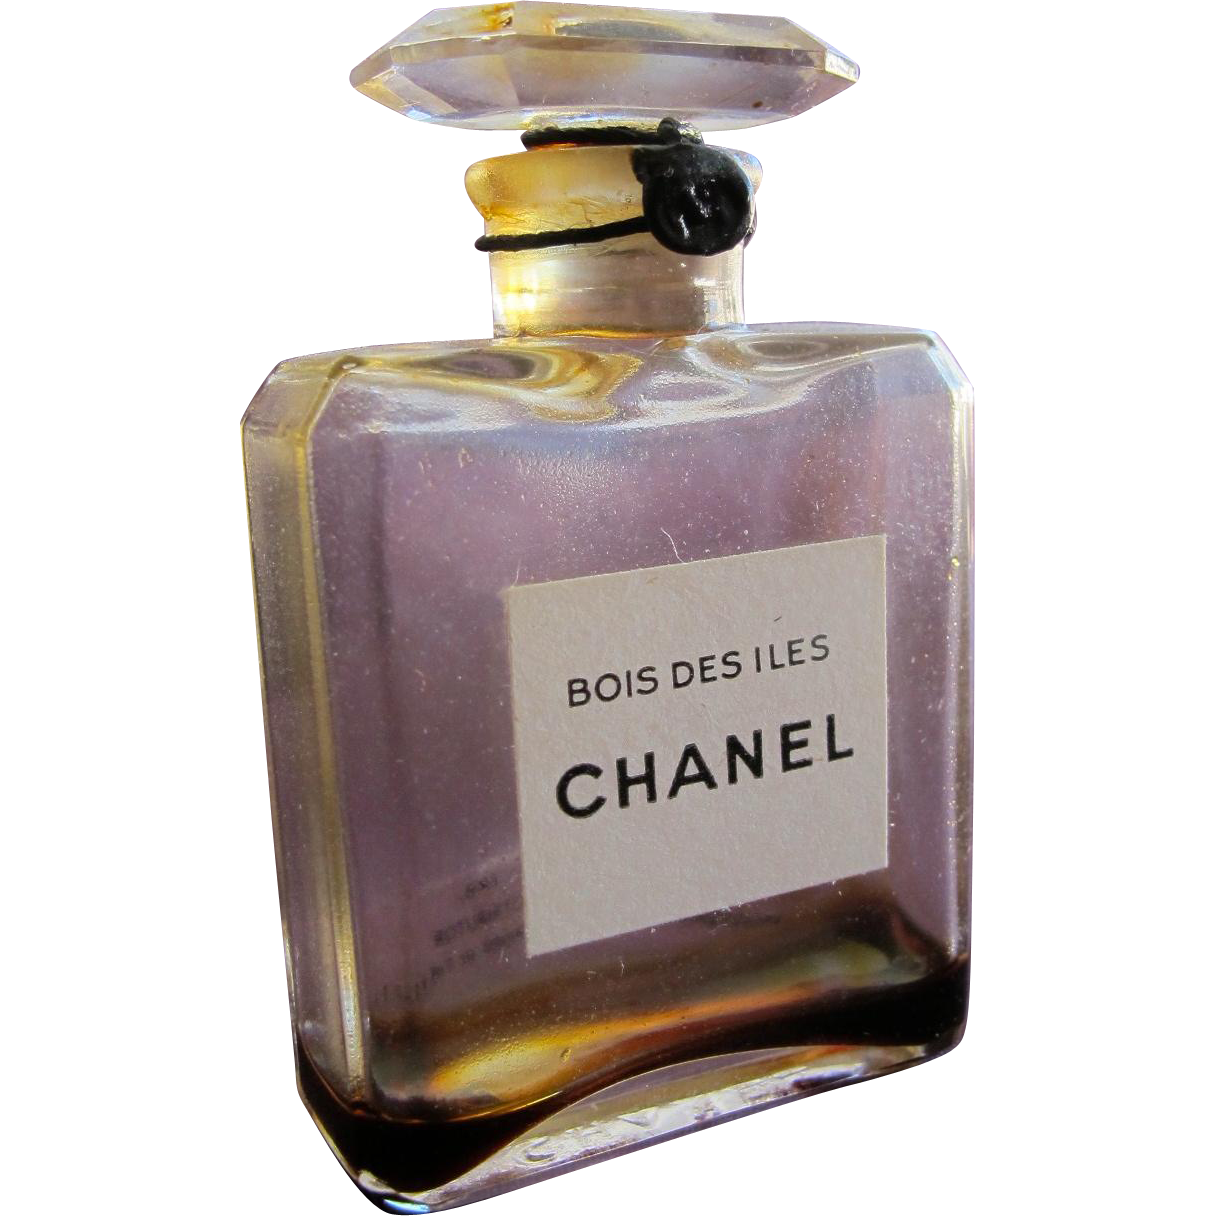 1930 S Chanel Perfume Bottle Bois Des Iles Thin Glass Top Unopened With Cord And Tag Chanel Perfume Bottle Chanel Perfume Perfume Bottles